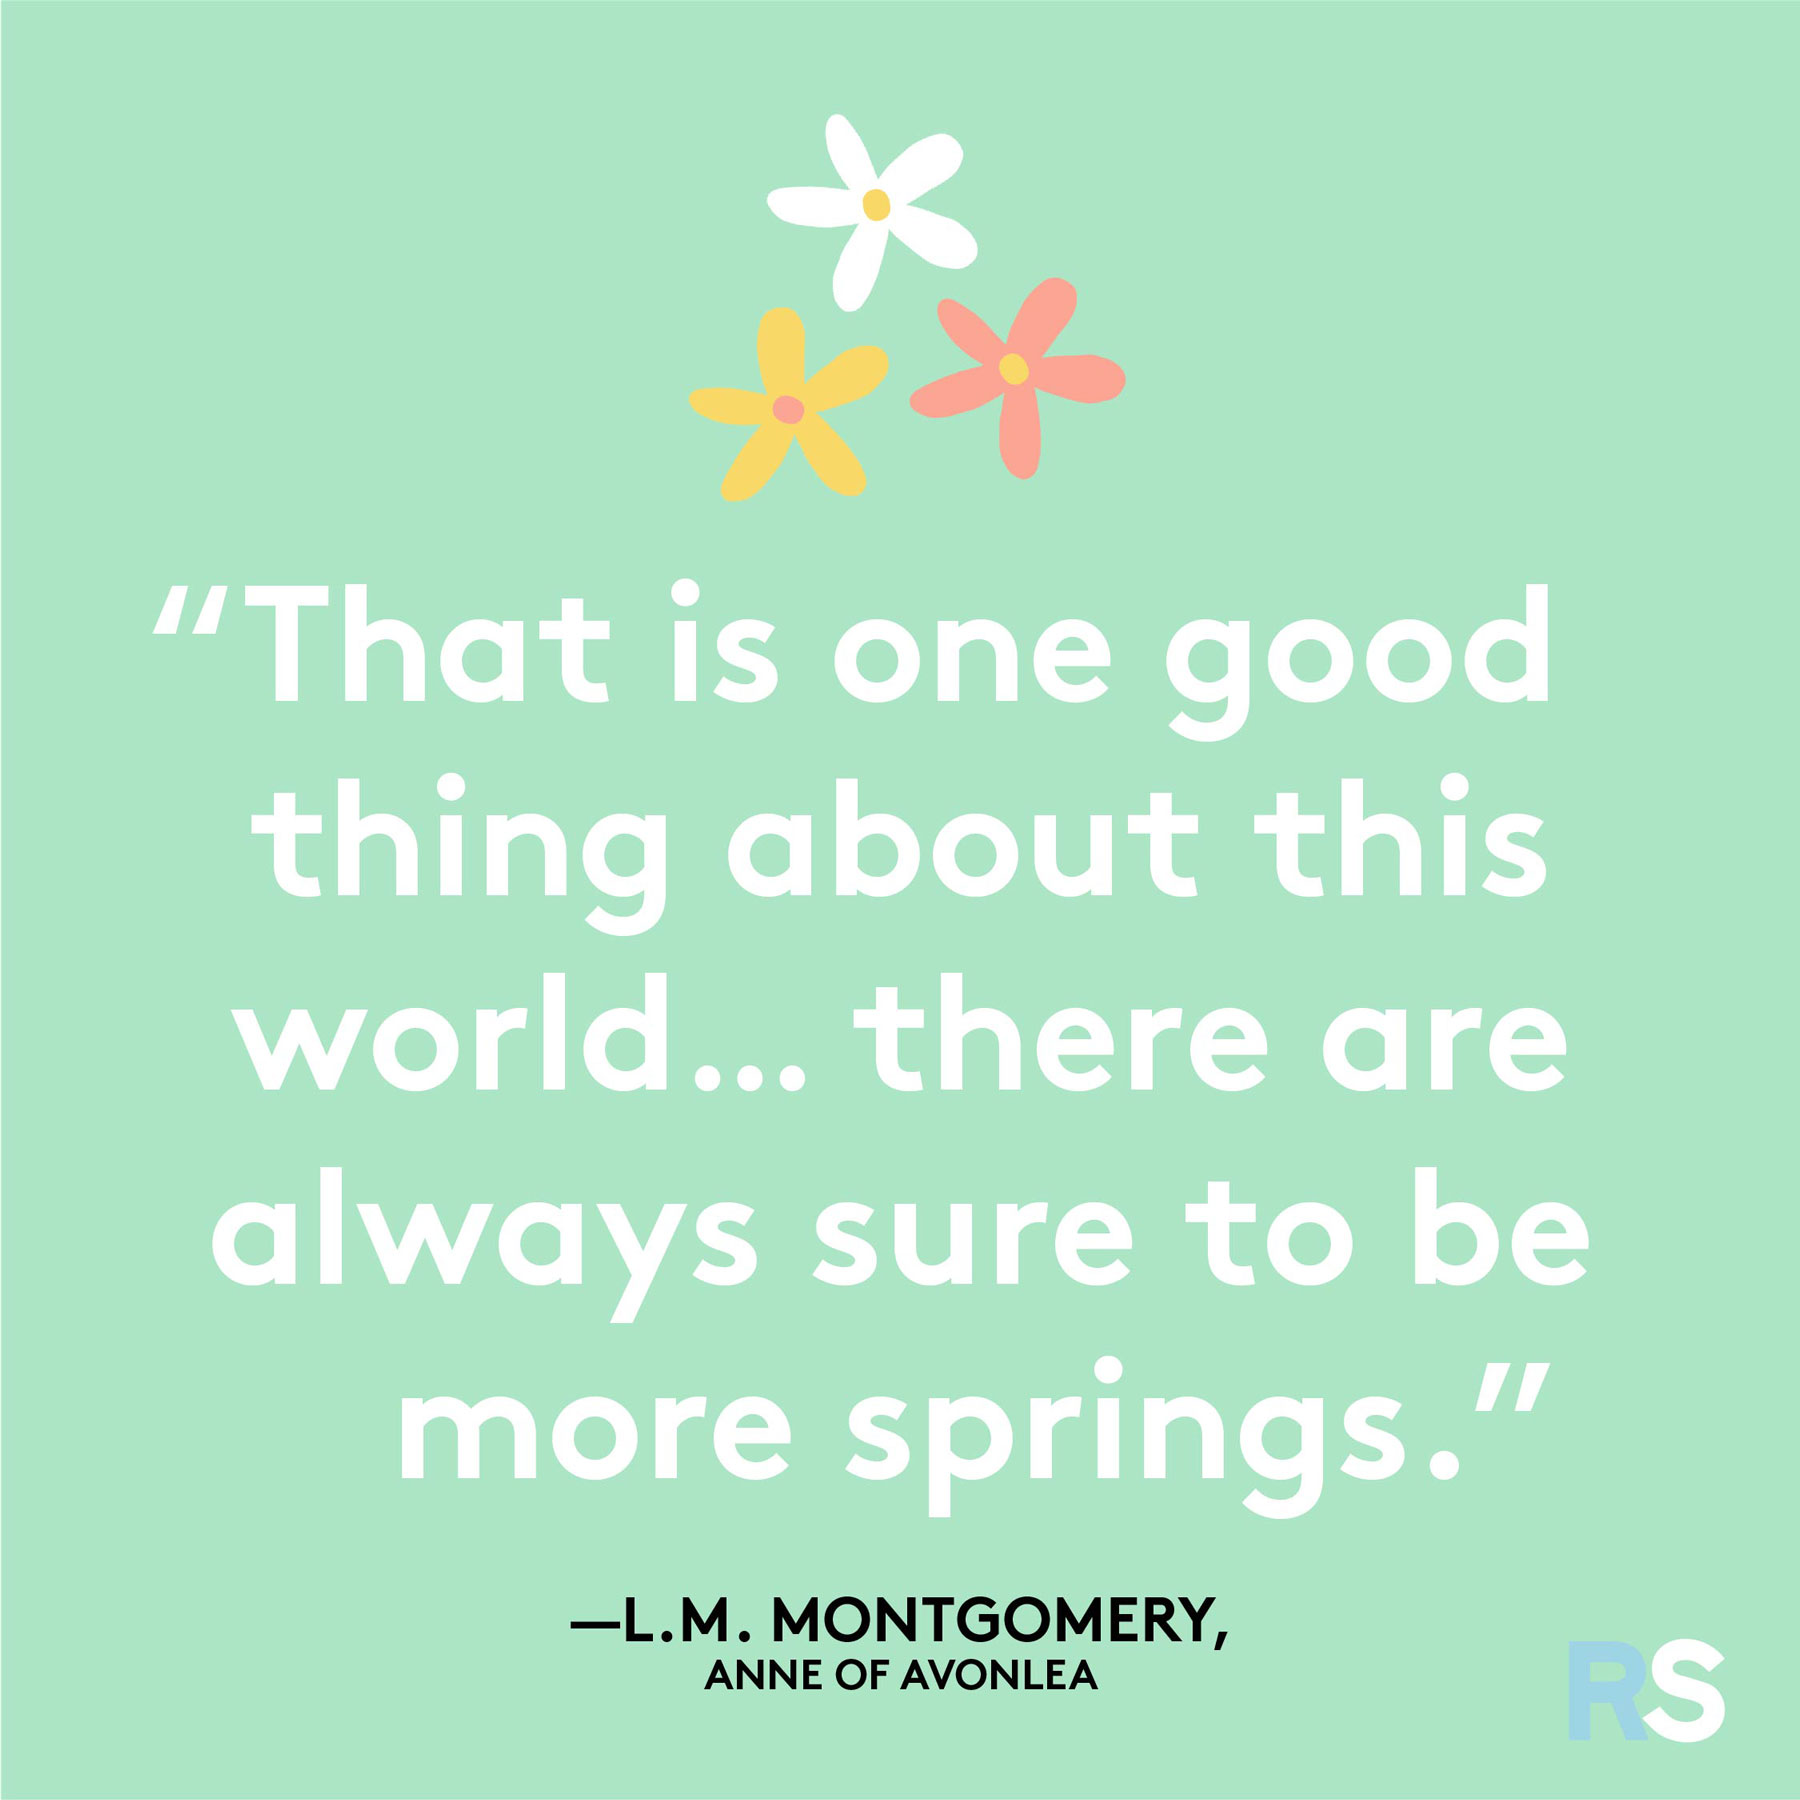 Positive motivating quotes, captions, messages – LM Montgomery Anne of Avonlea quote